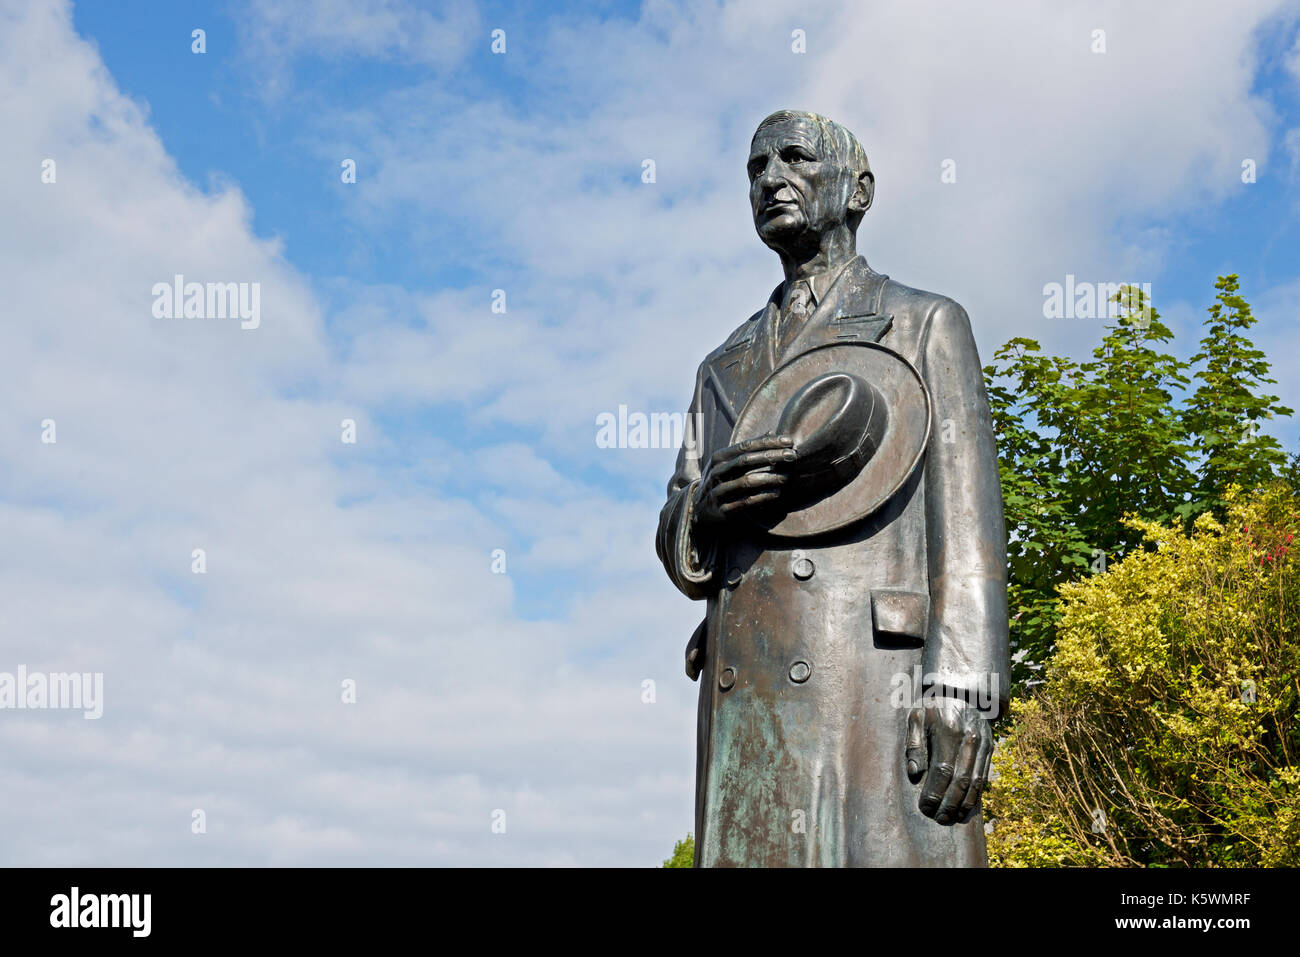 Statue of Eamon de Valera, in front of the Courthouse, Ennis, County Clare, Southern Ireland Stock Photo